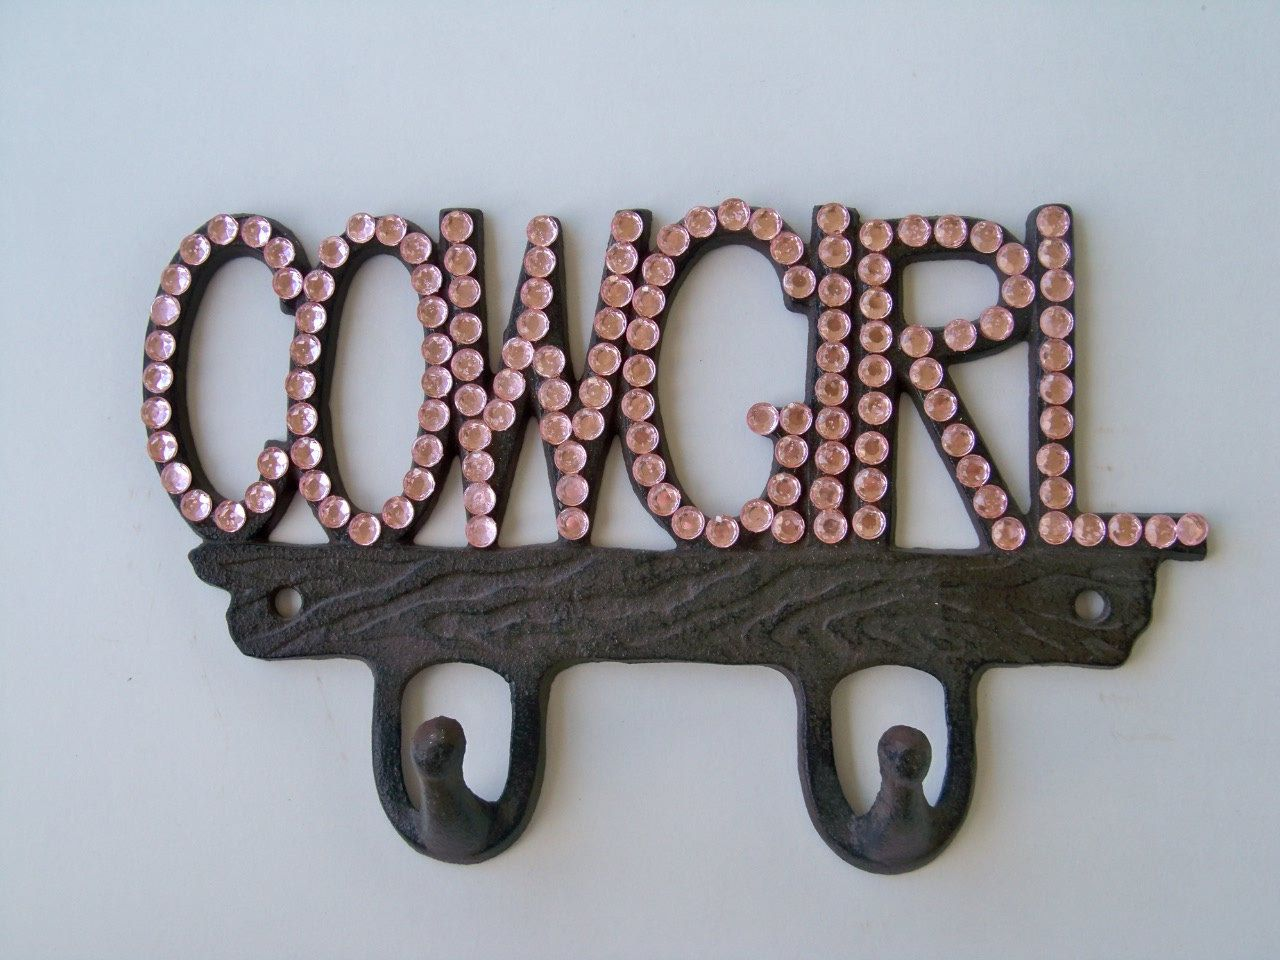 Western bedroom wall decor - Pink Cowgirl Sparkle On Brown Metal Wall Decor With Hooks Western Cowgirl Bling